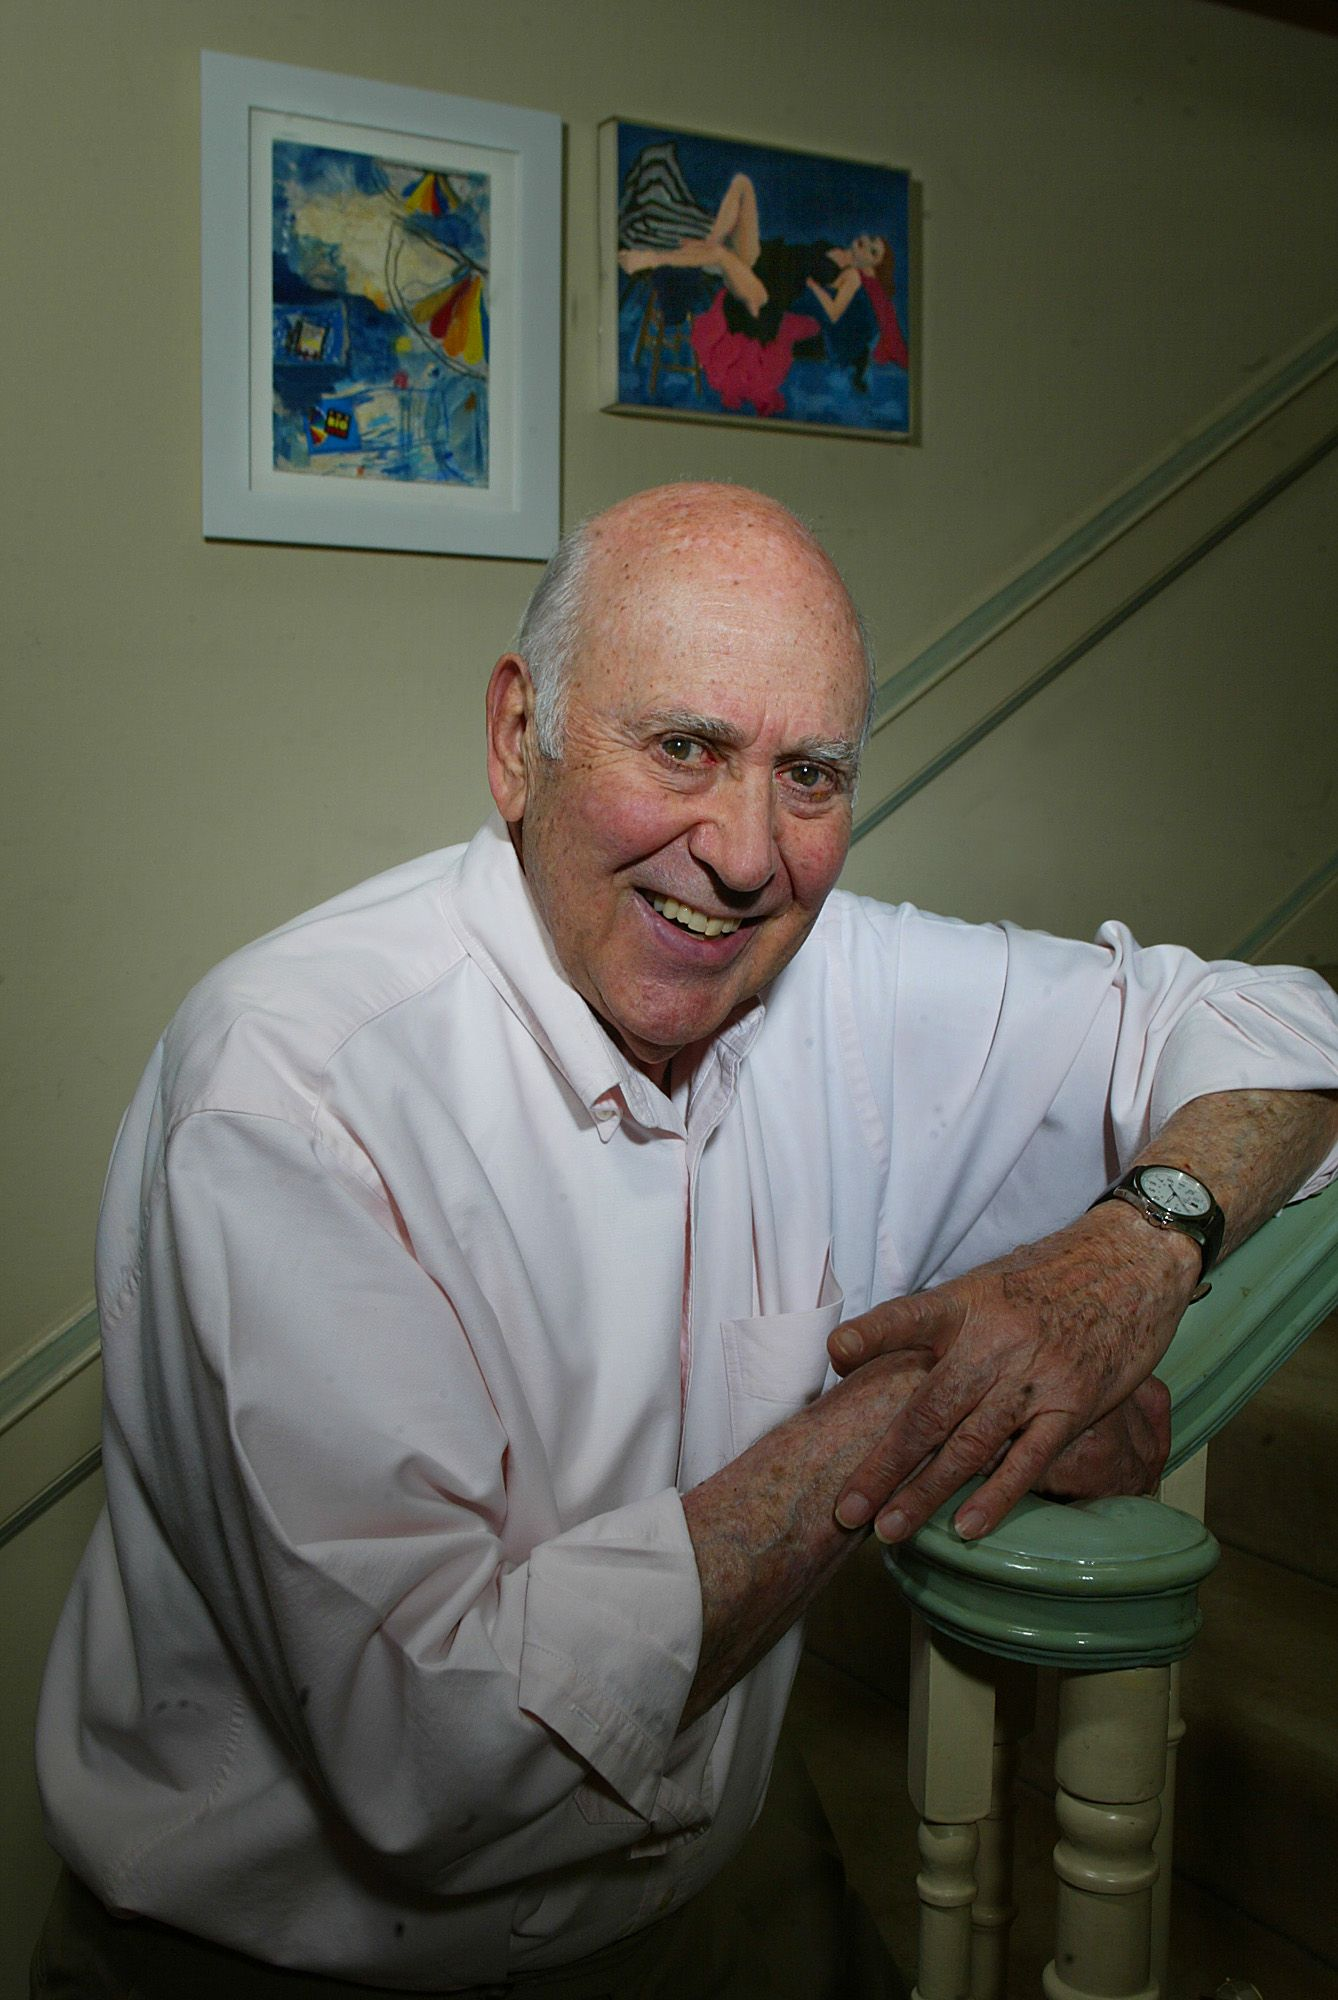 Late Carl Reiner at his Beverly Hills home, Beverly Hills, California April 25, 2003 | Photo: Getty Images